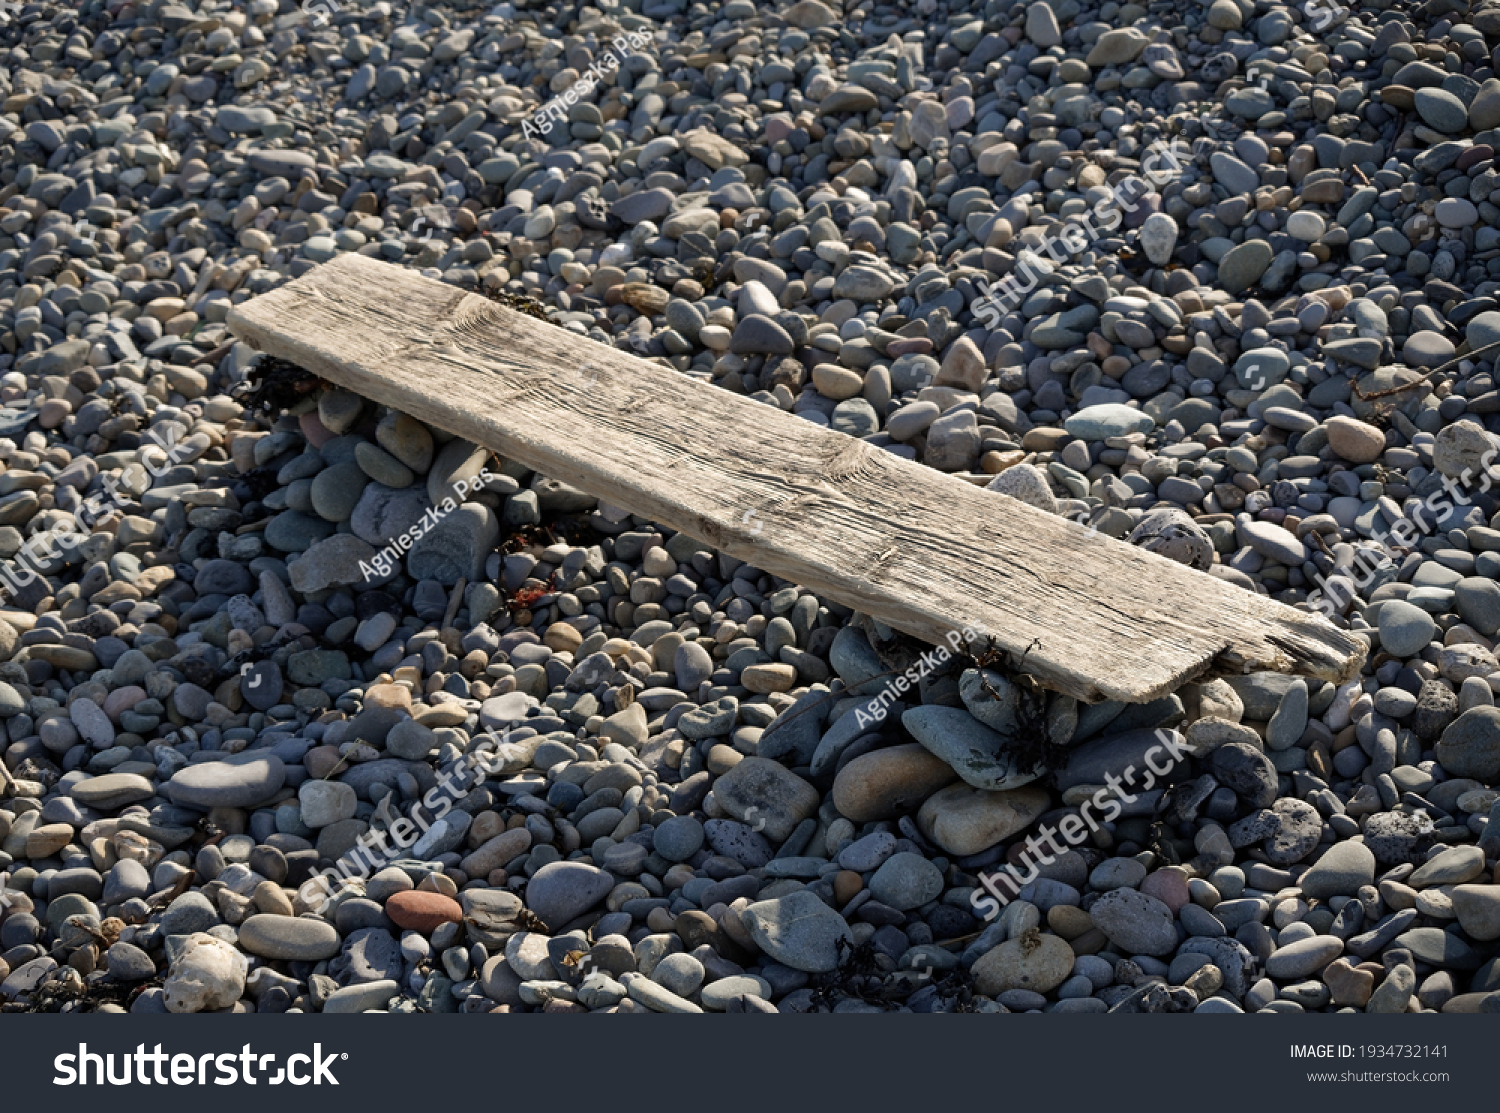 stock-photo-a-wood-plank-in-use-as-tempo